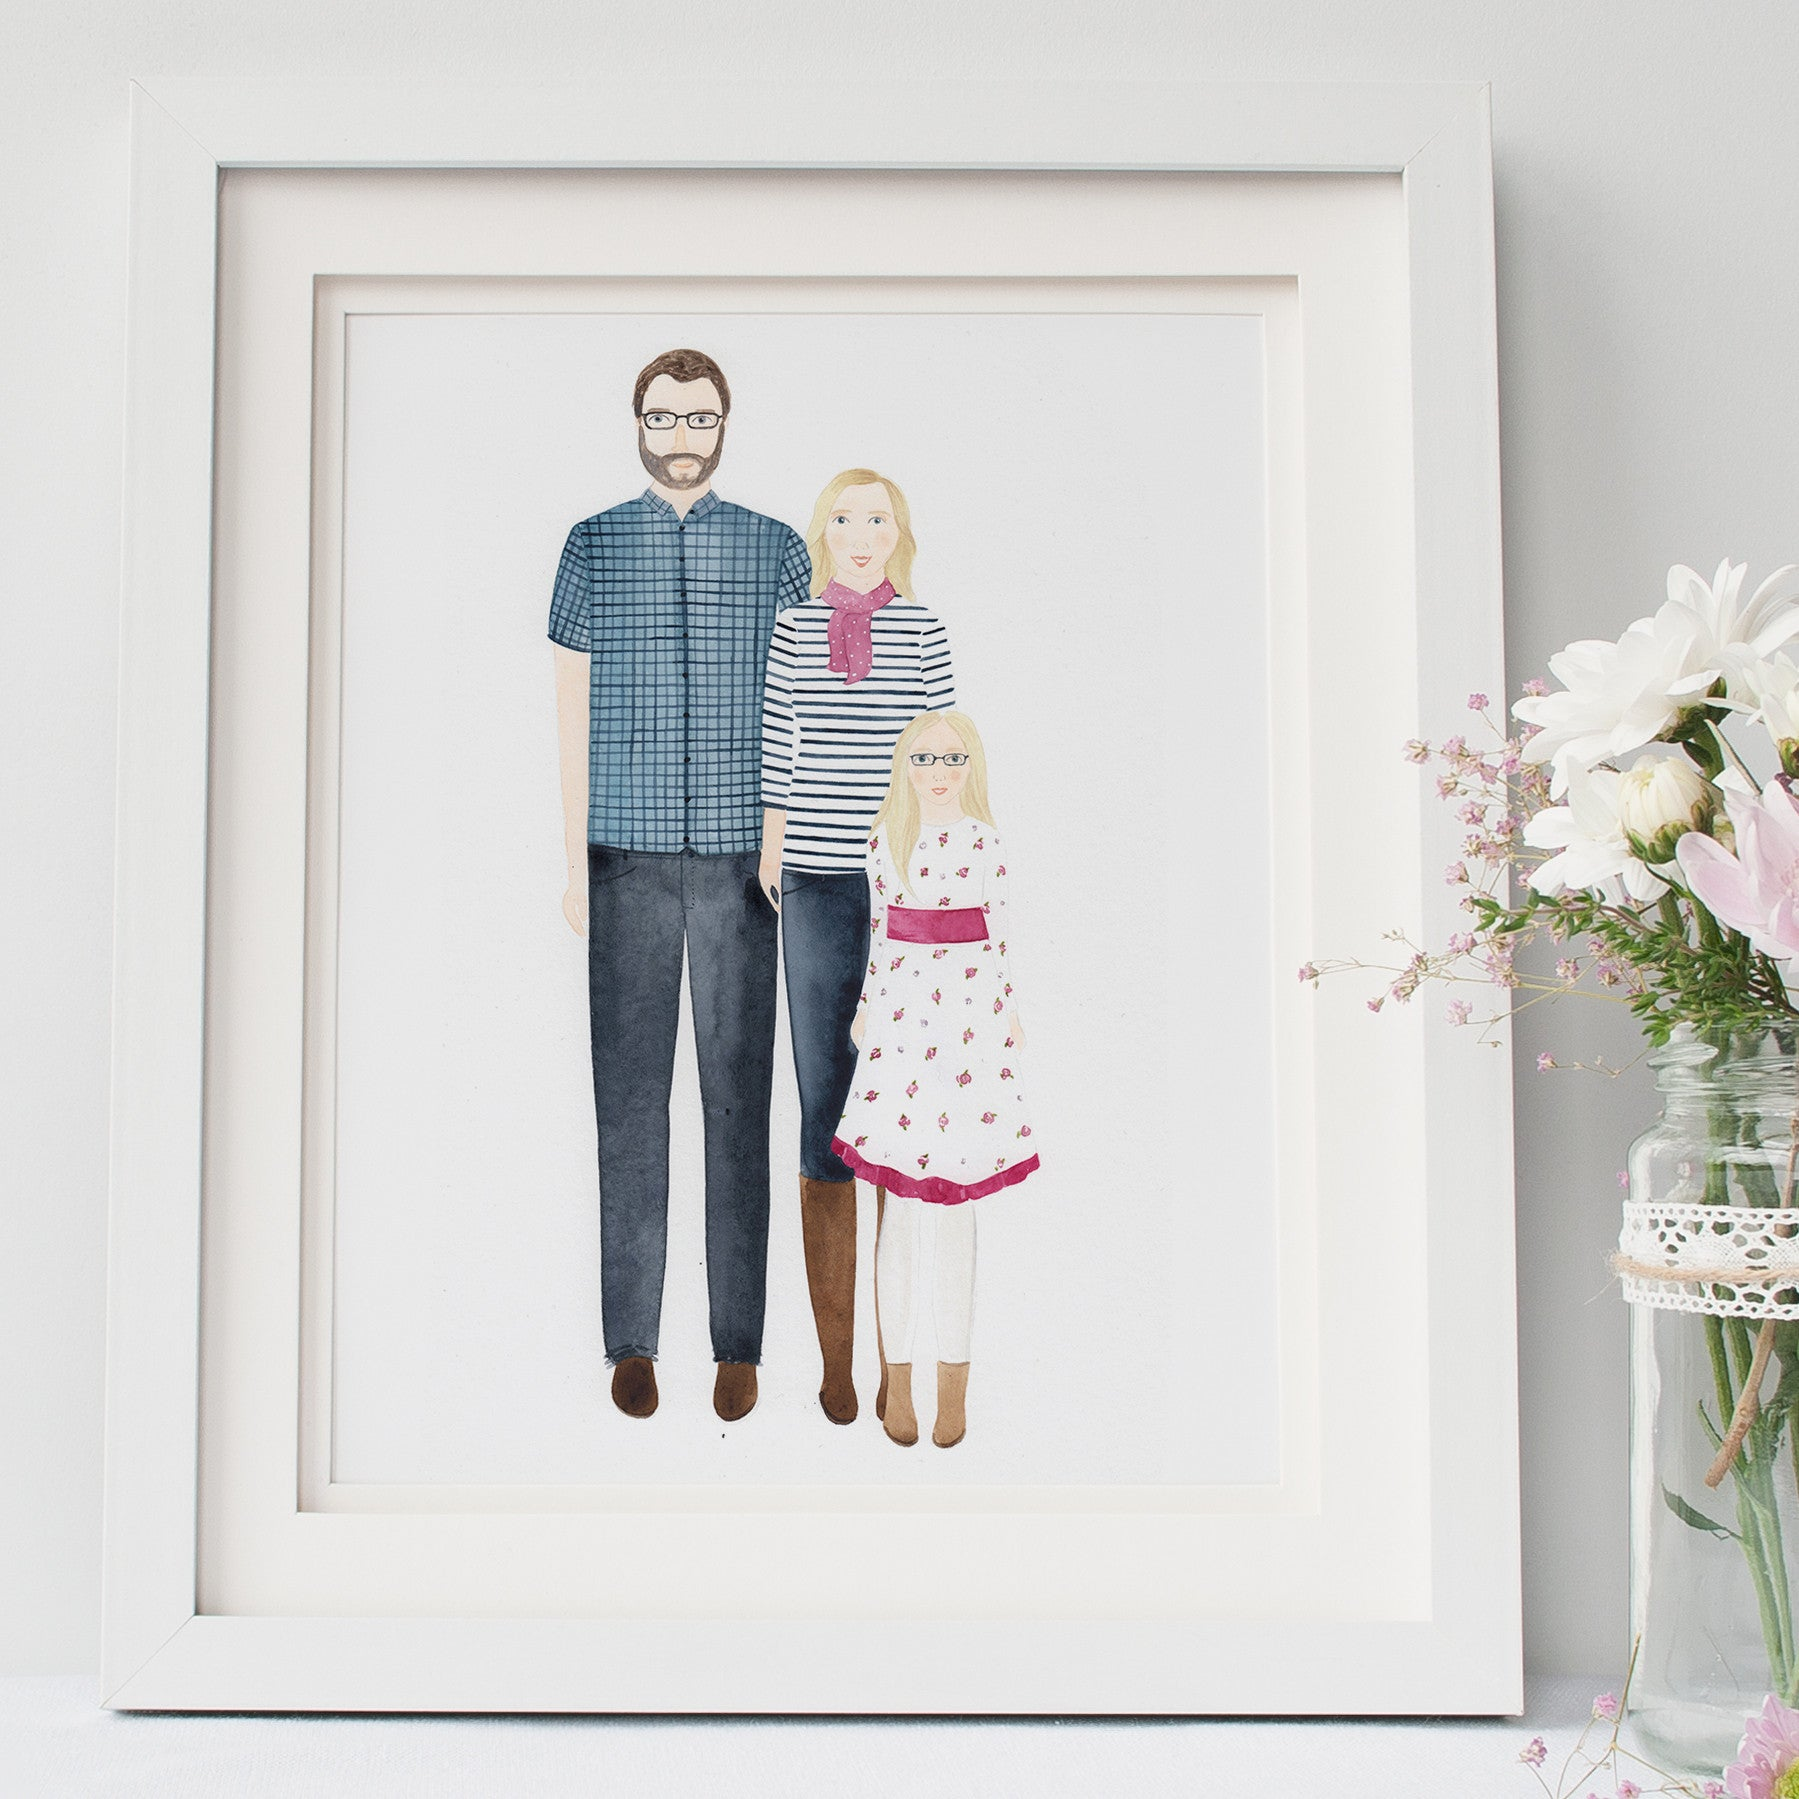 Custom Family Portrait Illustration - Nia Tudor Illustration